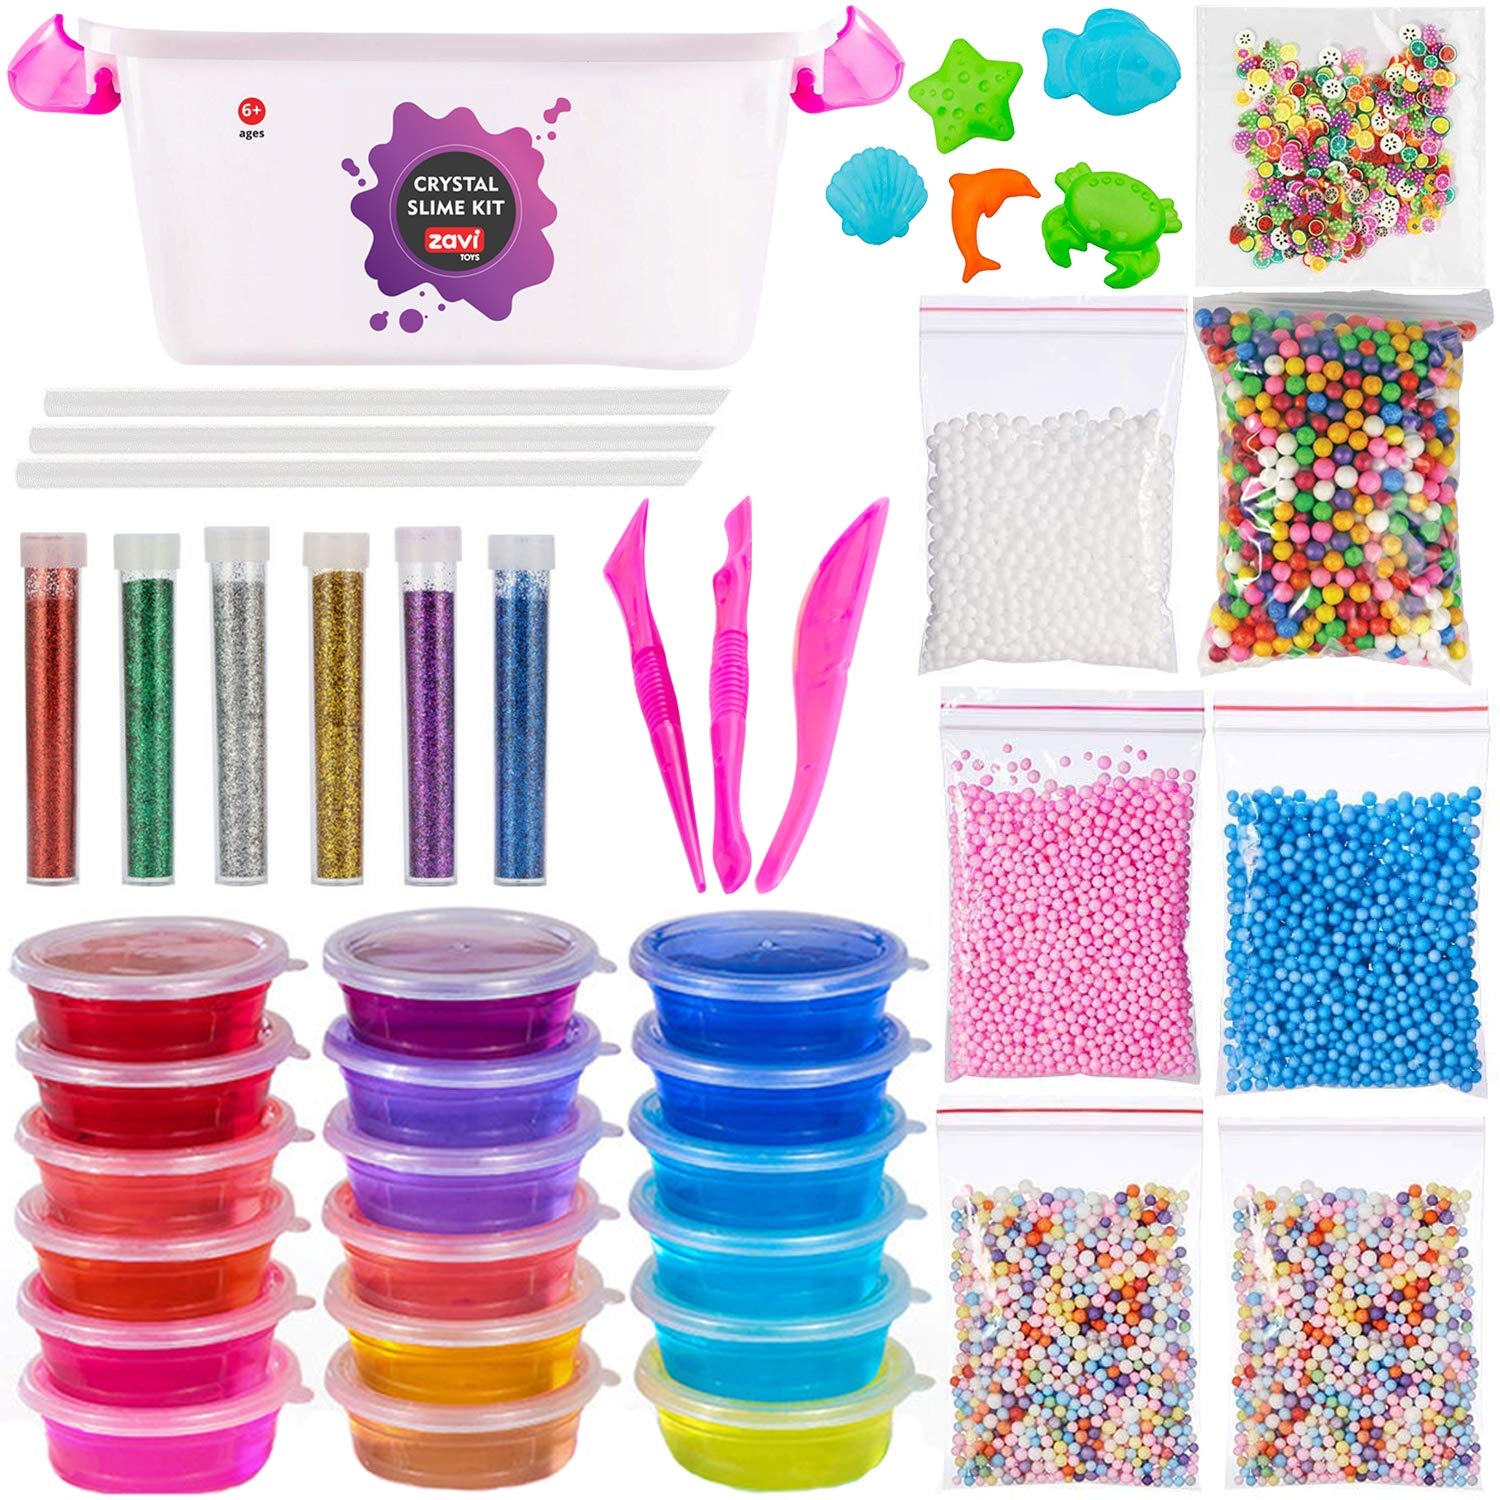 Ultimate Slime Kit For Girls - DIY Slime Making Kits With Everything You Need - Make Your Own Fluffy Slime Supplies For Kids With 18 Colors, Glitter and Foam Balls - Educational Sensory Safe Toy Set by Zavi Toys